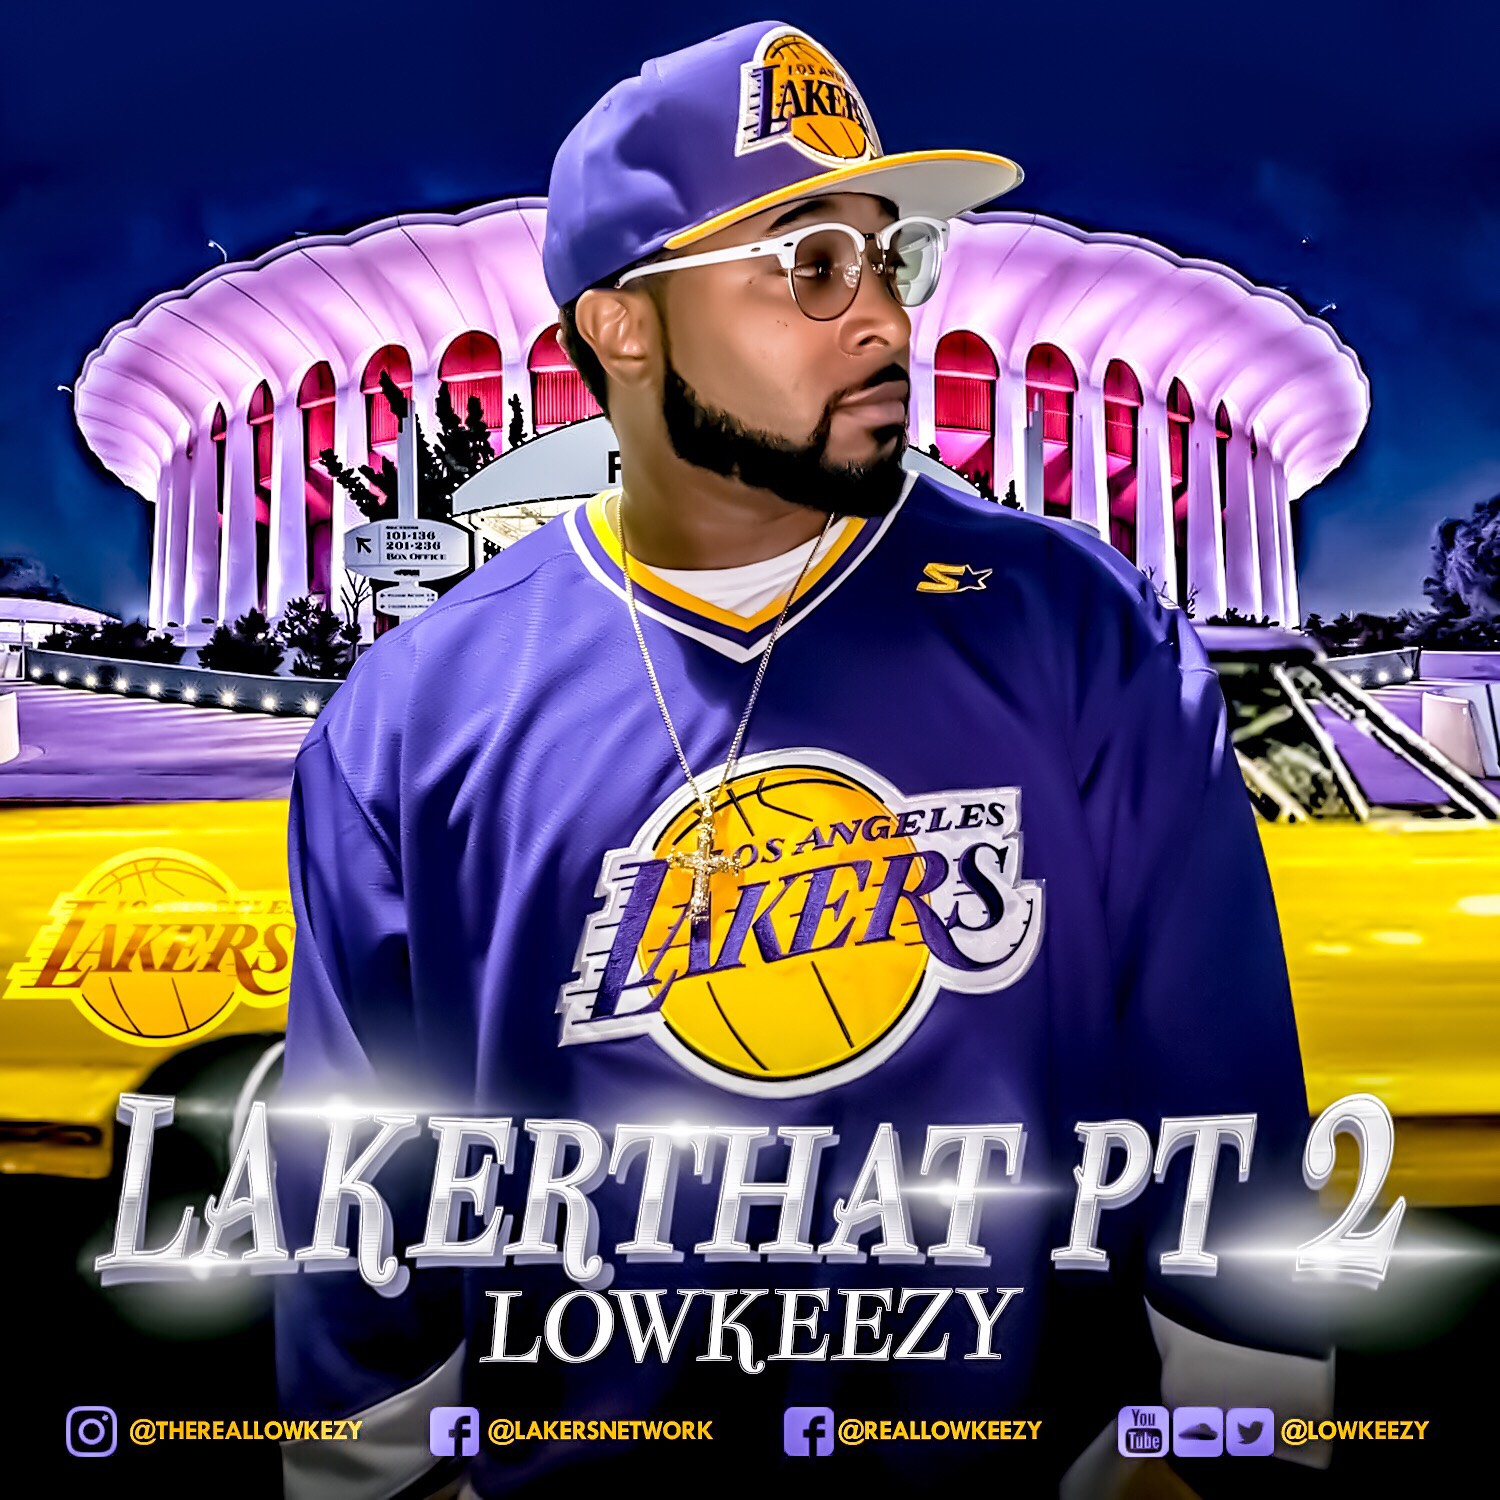 Art for Laker That part 2  by Lowkeezy